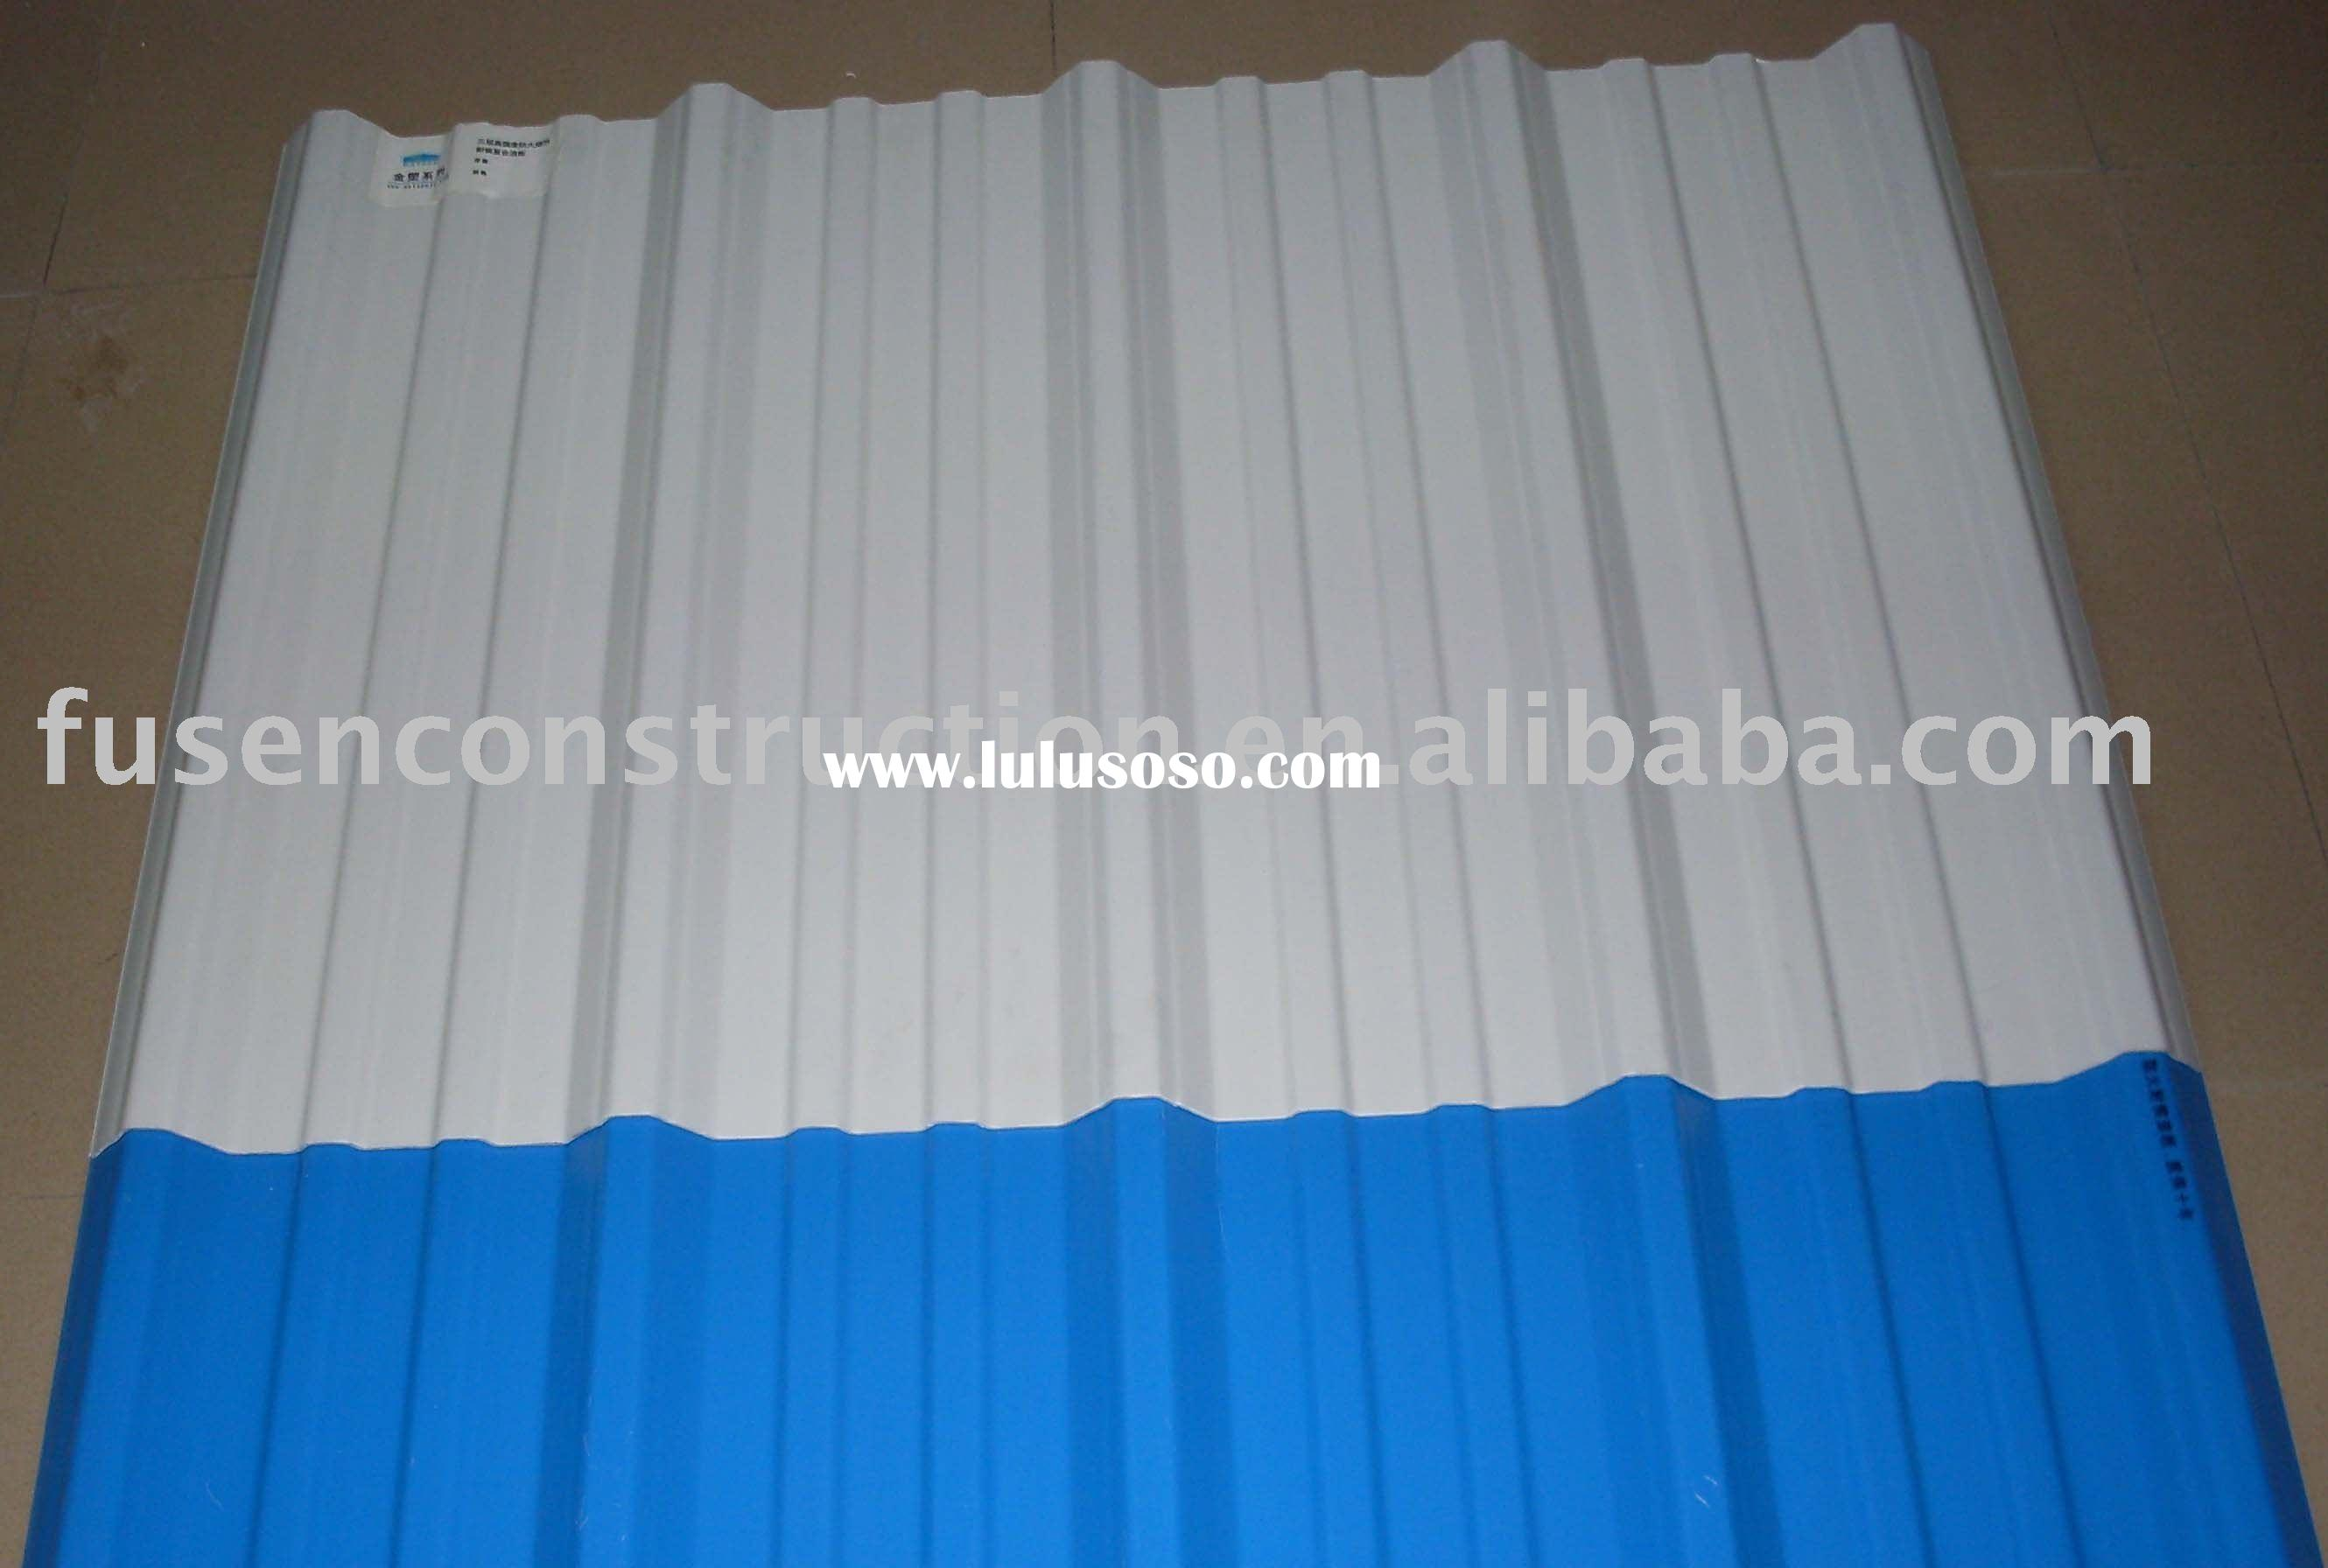 Fireproof and temperature resistant PVC roofing sheet